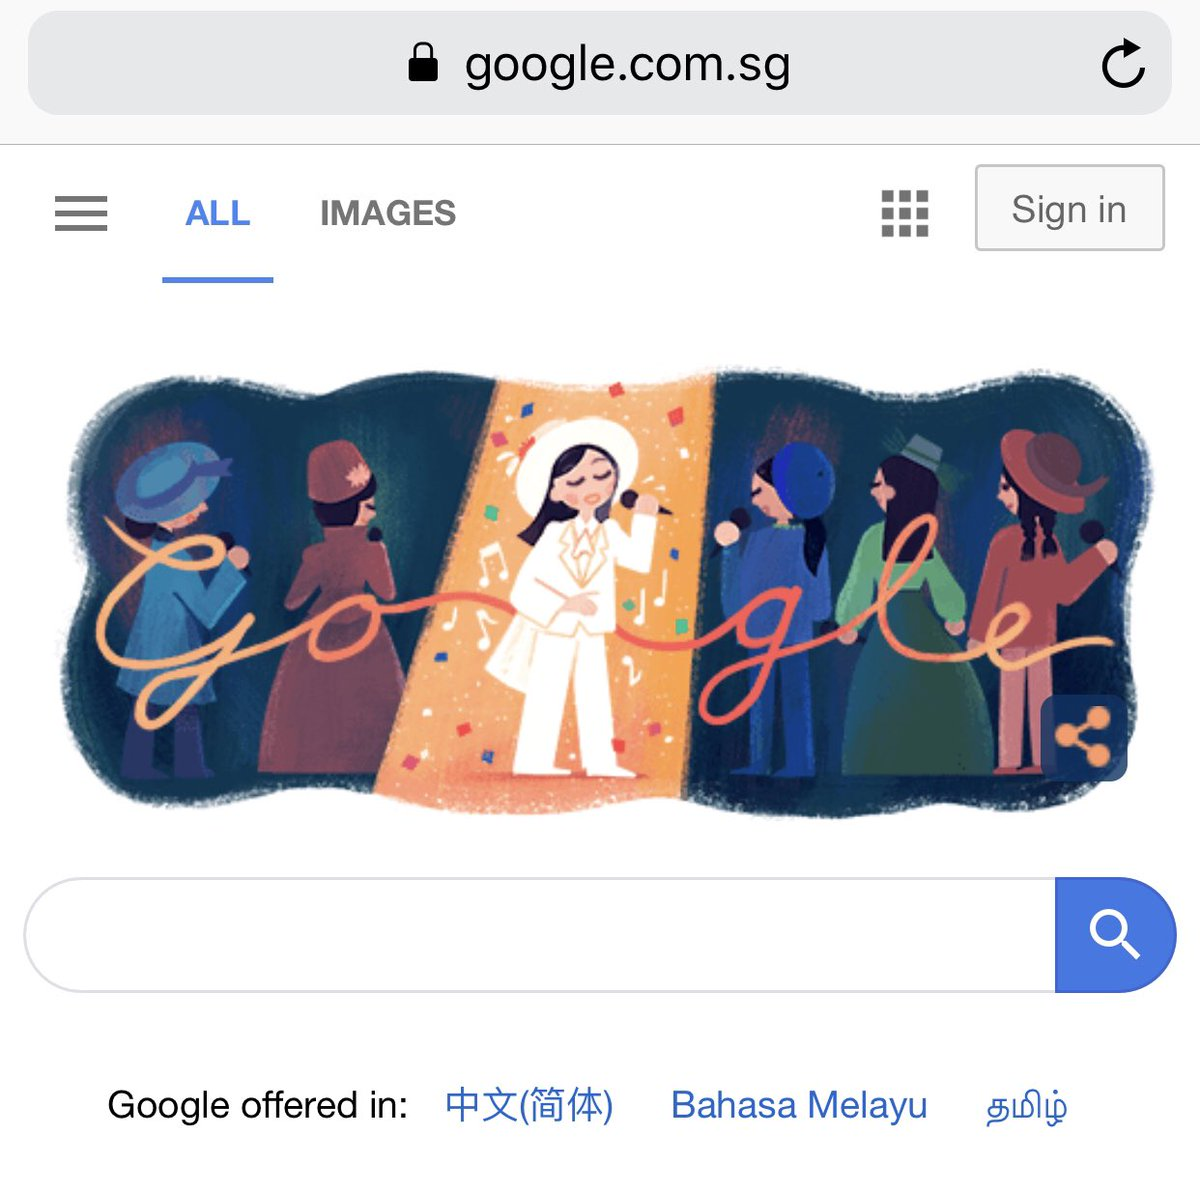 Just realized that Google did a Google Doodle for Feng Fei Fei today. https://t.co/0L5OXn32IH